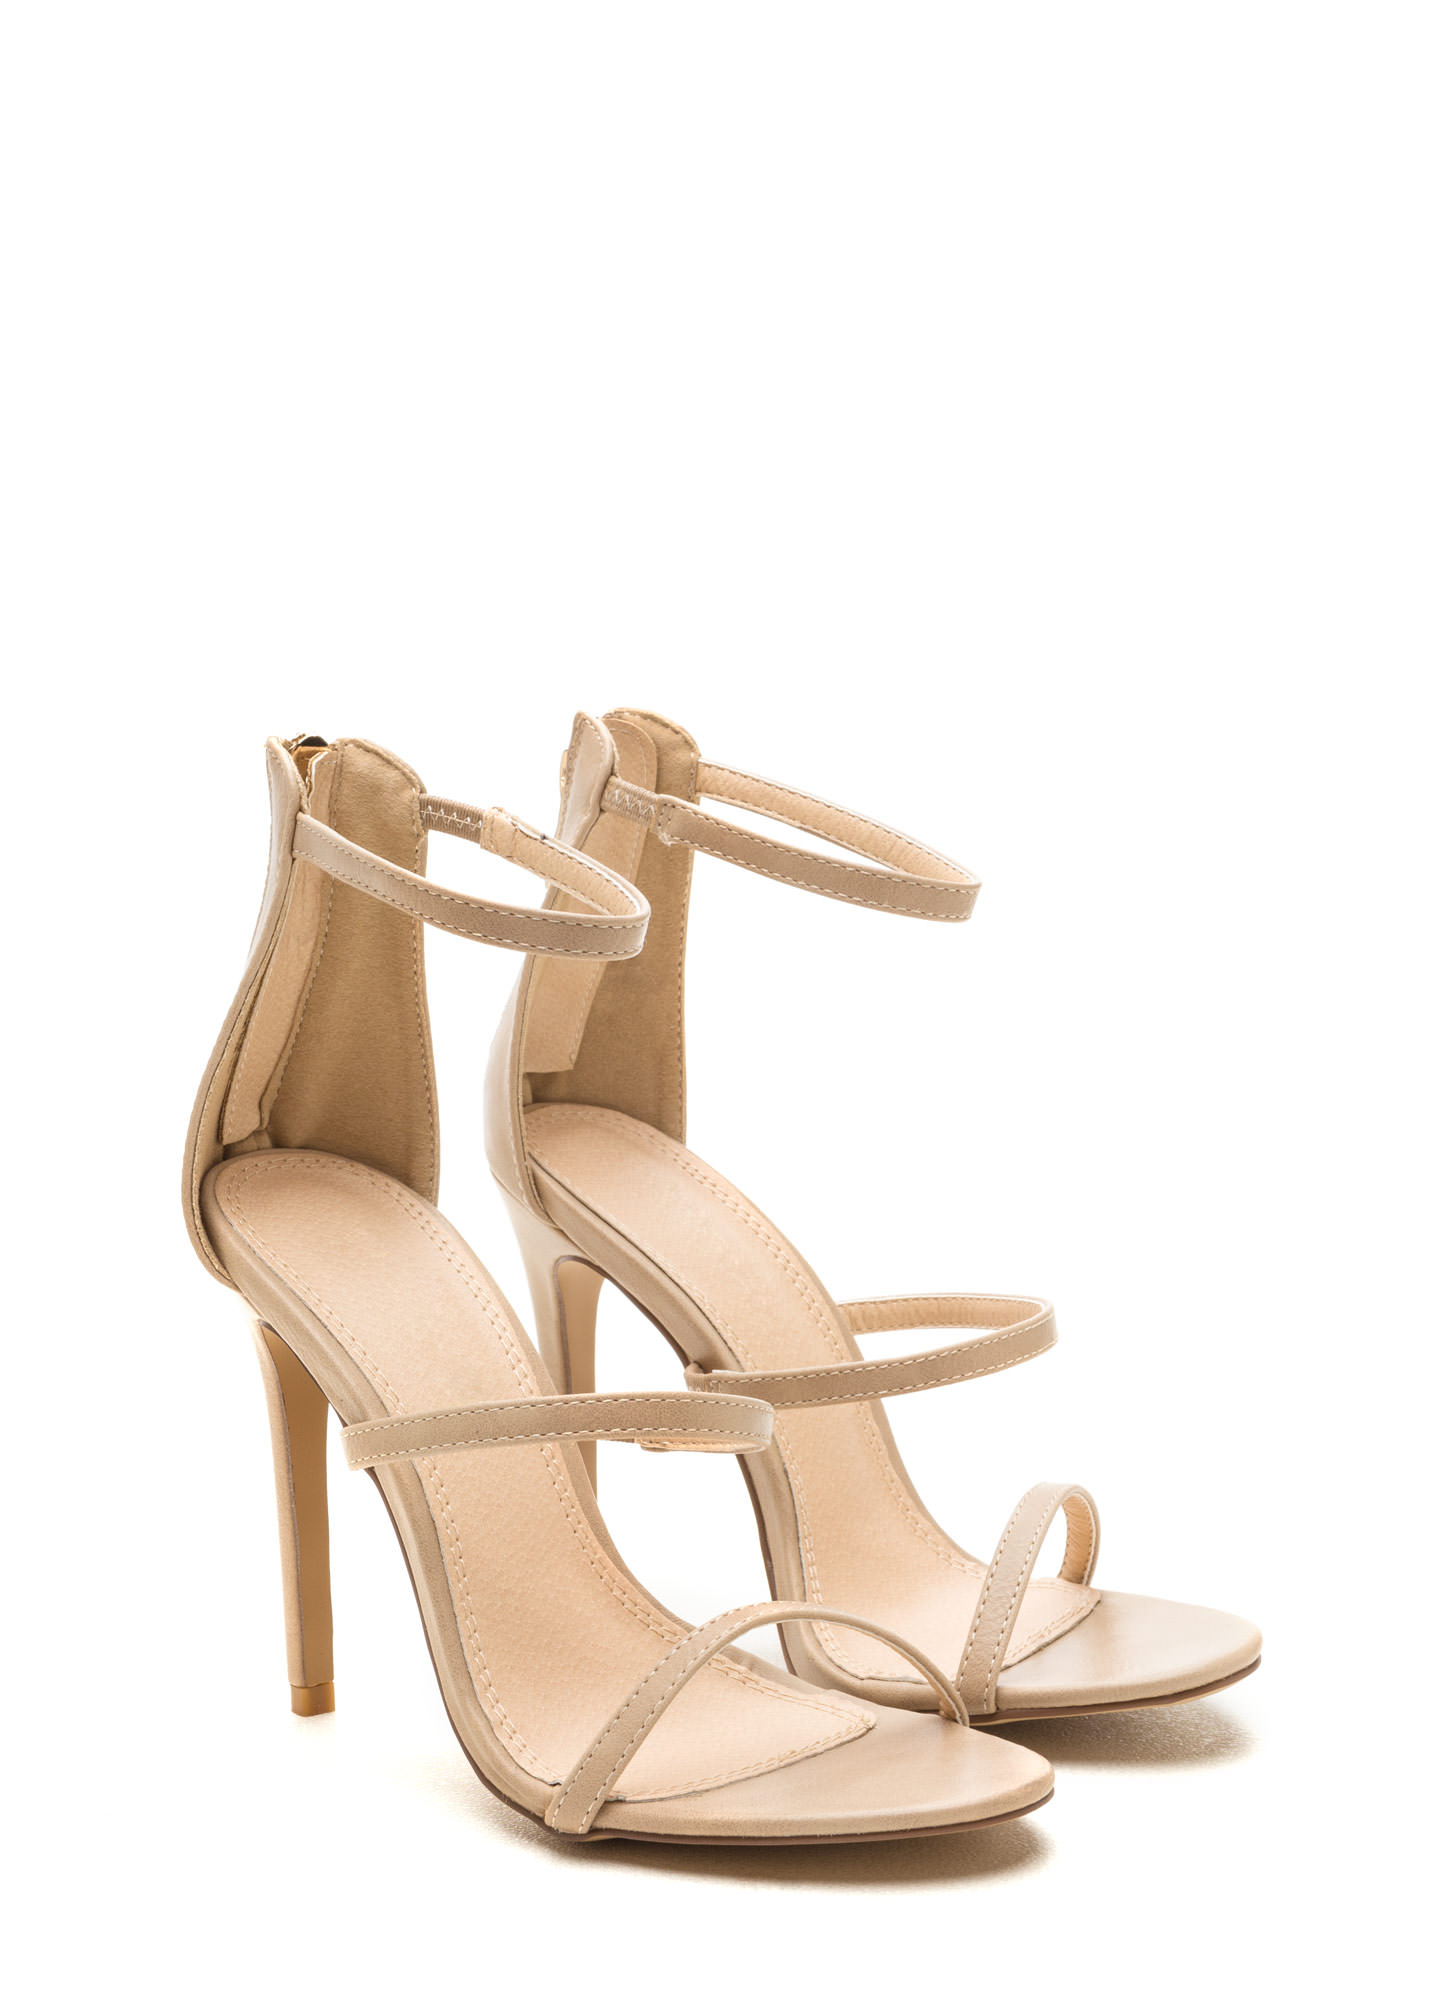 Strappy Life Single-Sole Heels COBALT TAN BLACK BLUSH NEONCORAL ...